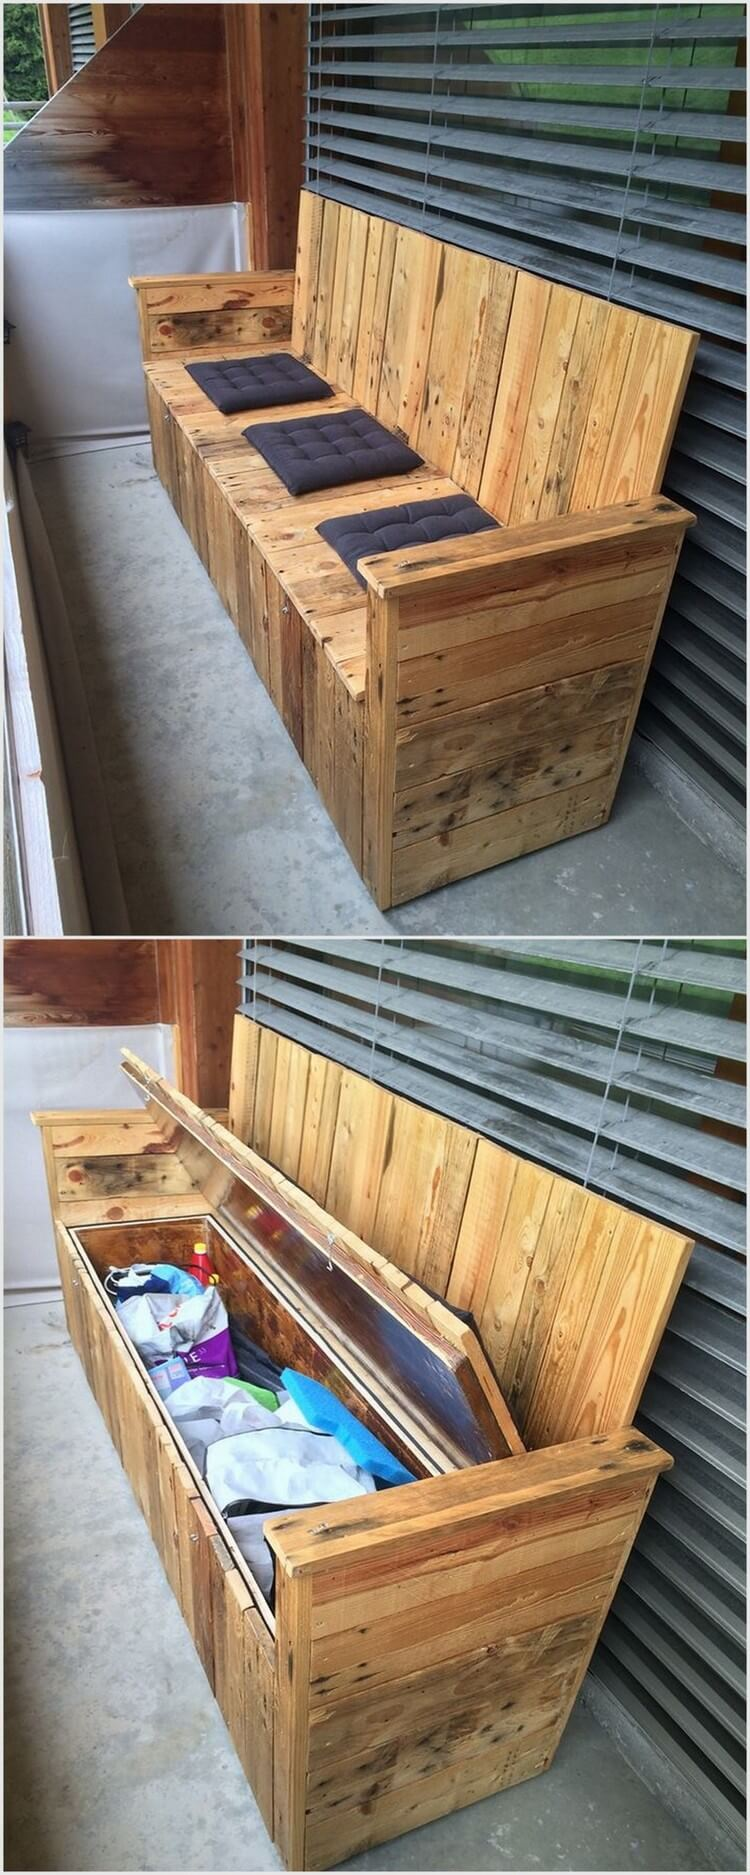 Wood Pallet Bench with Storage